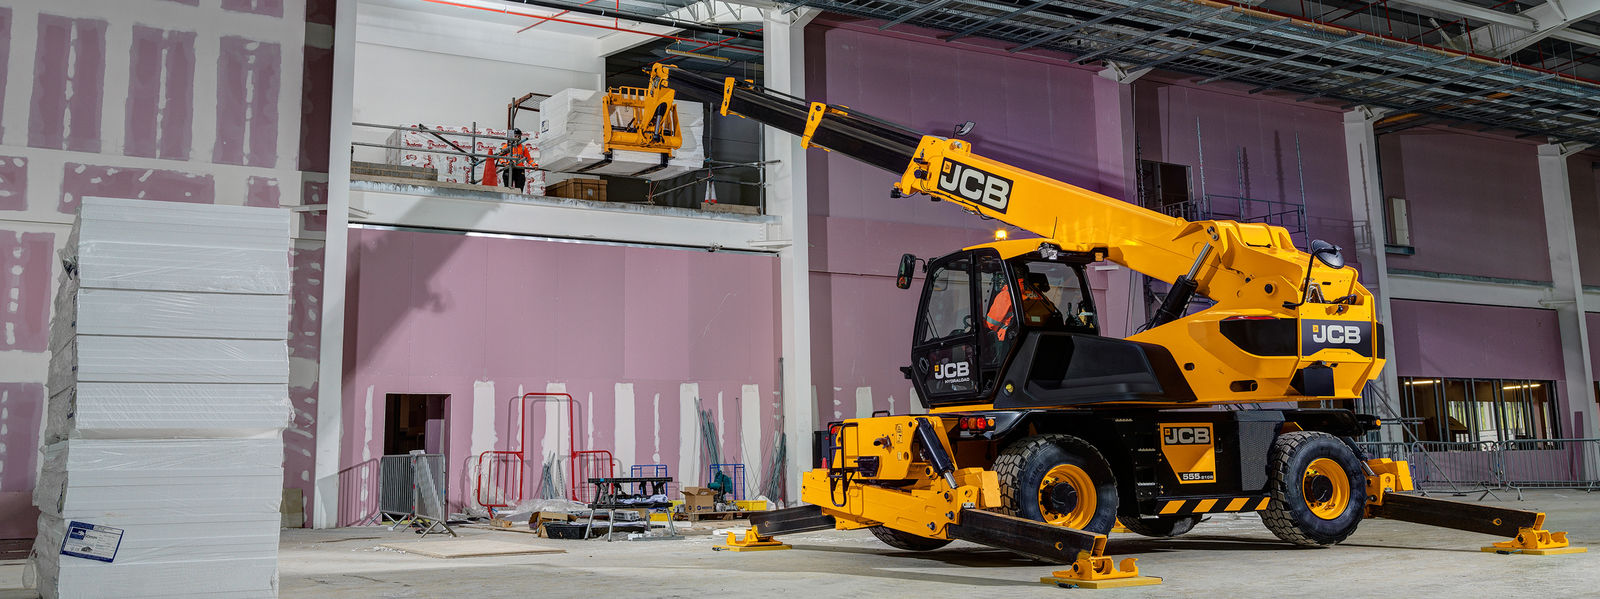 INTRODUCING THE JCB 5.5-21 ROTO!